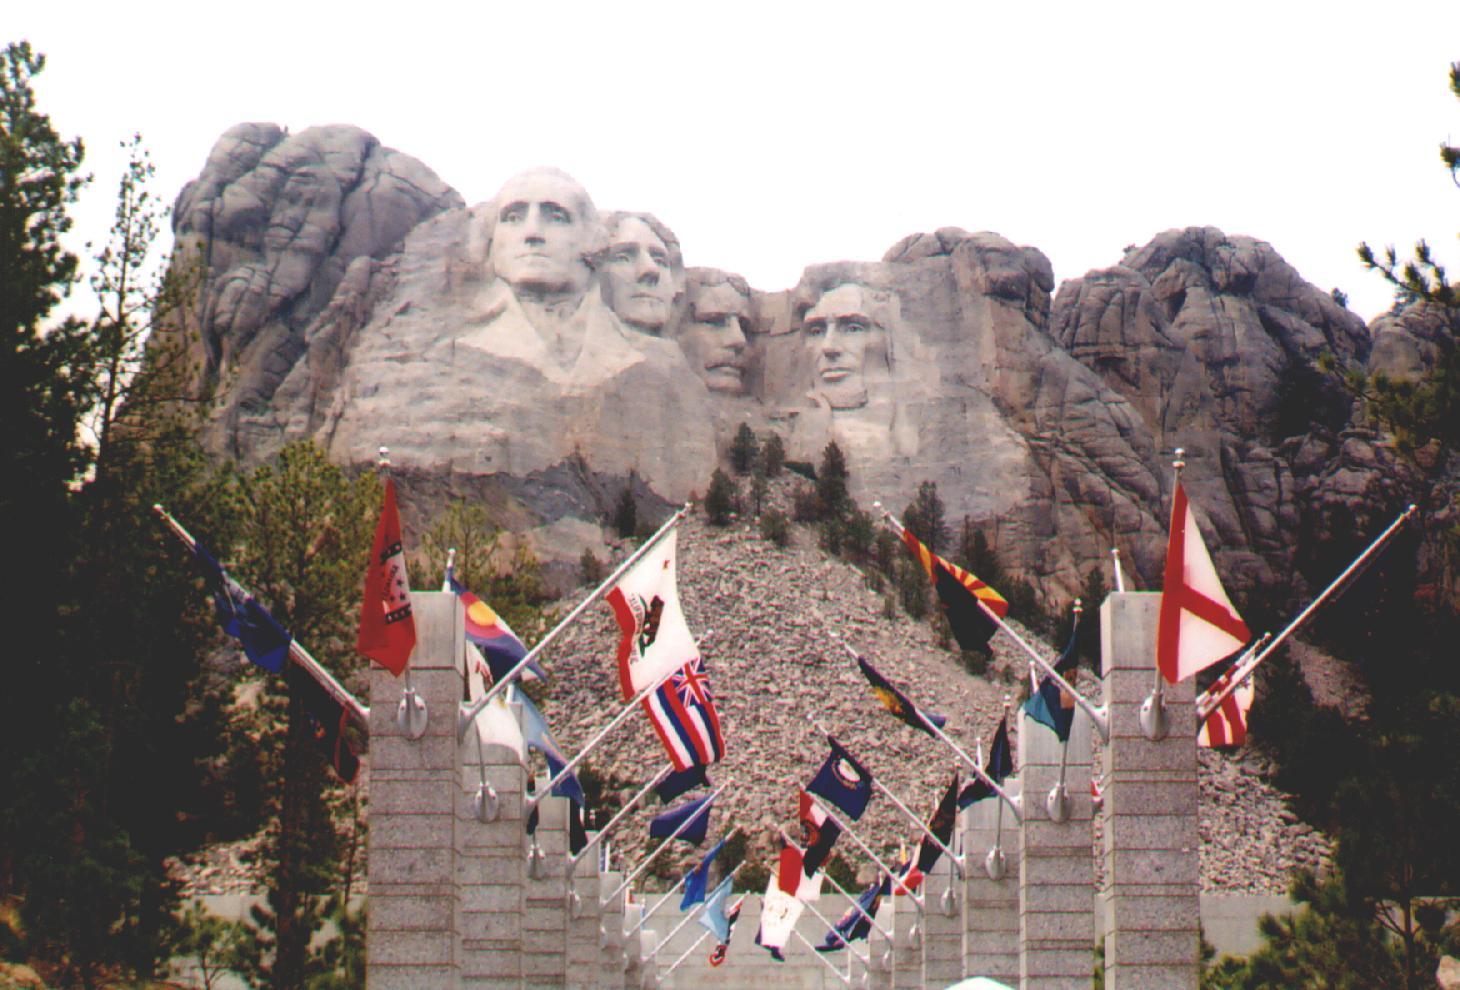 Mount Rushmore built 1927-1941